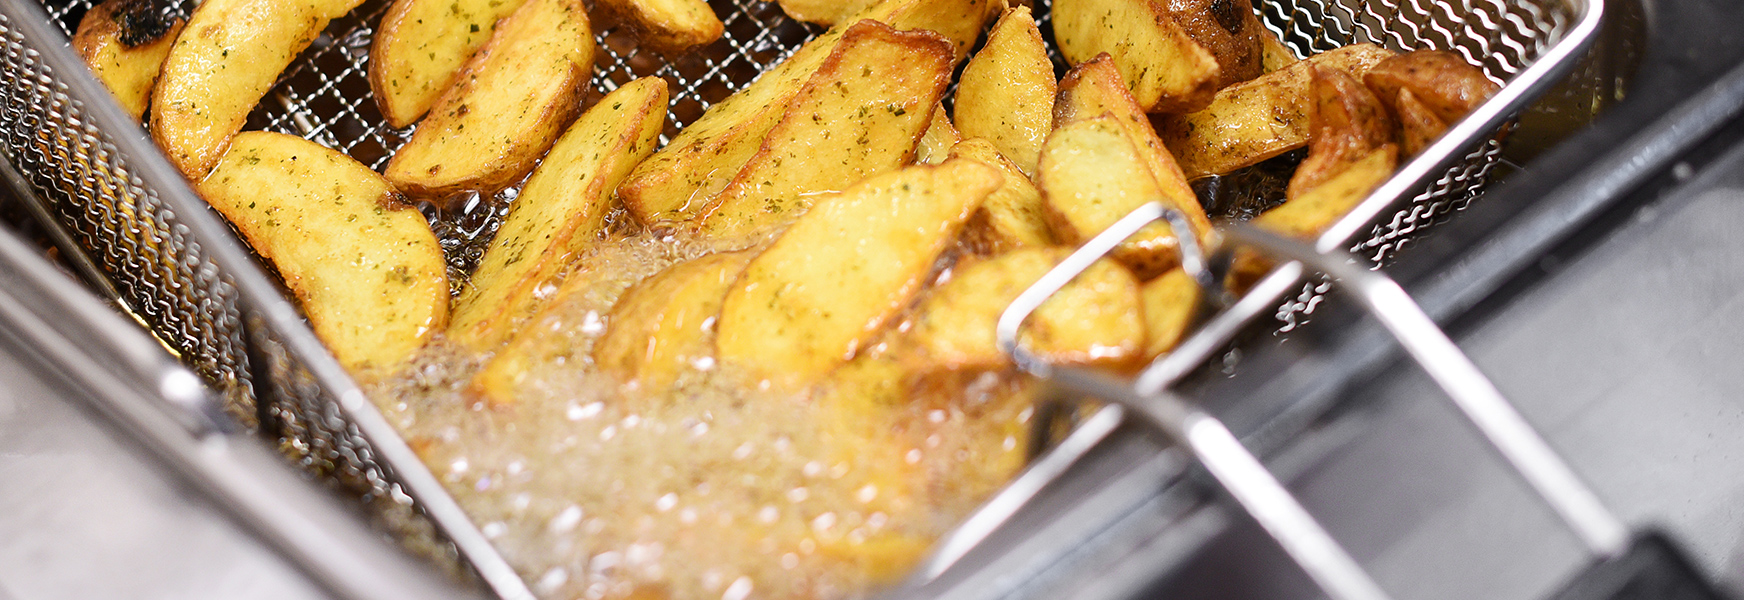 fryer cooking potato wedges